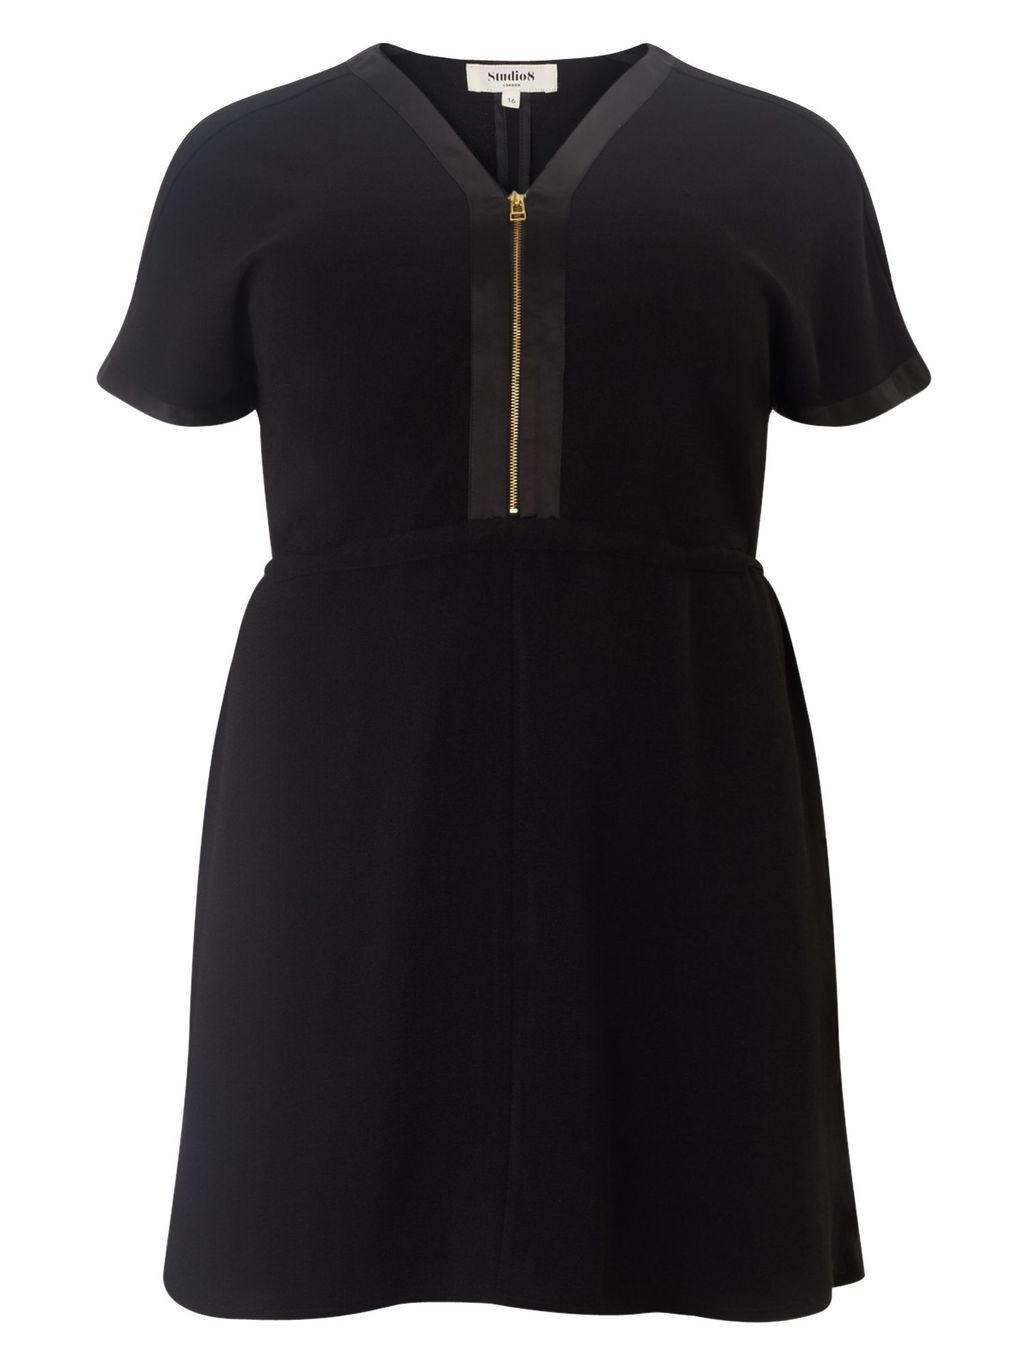 Lisa Tunic Dress, Black - style: tunic; length: mid thigh; neckline: v-neck; pattern: plain; bust detail: subtle bust detail; predominant colour: black; occasions: casual, creative work; fit: fitted at waist & bust; fibres: polyester/polyamide - stretch; sleeve length: short sleeve; sleeve style: standard; pattern type: fabric; texture group: other - light to midweight; season: s/s 2016; wardrobe: basic